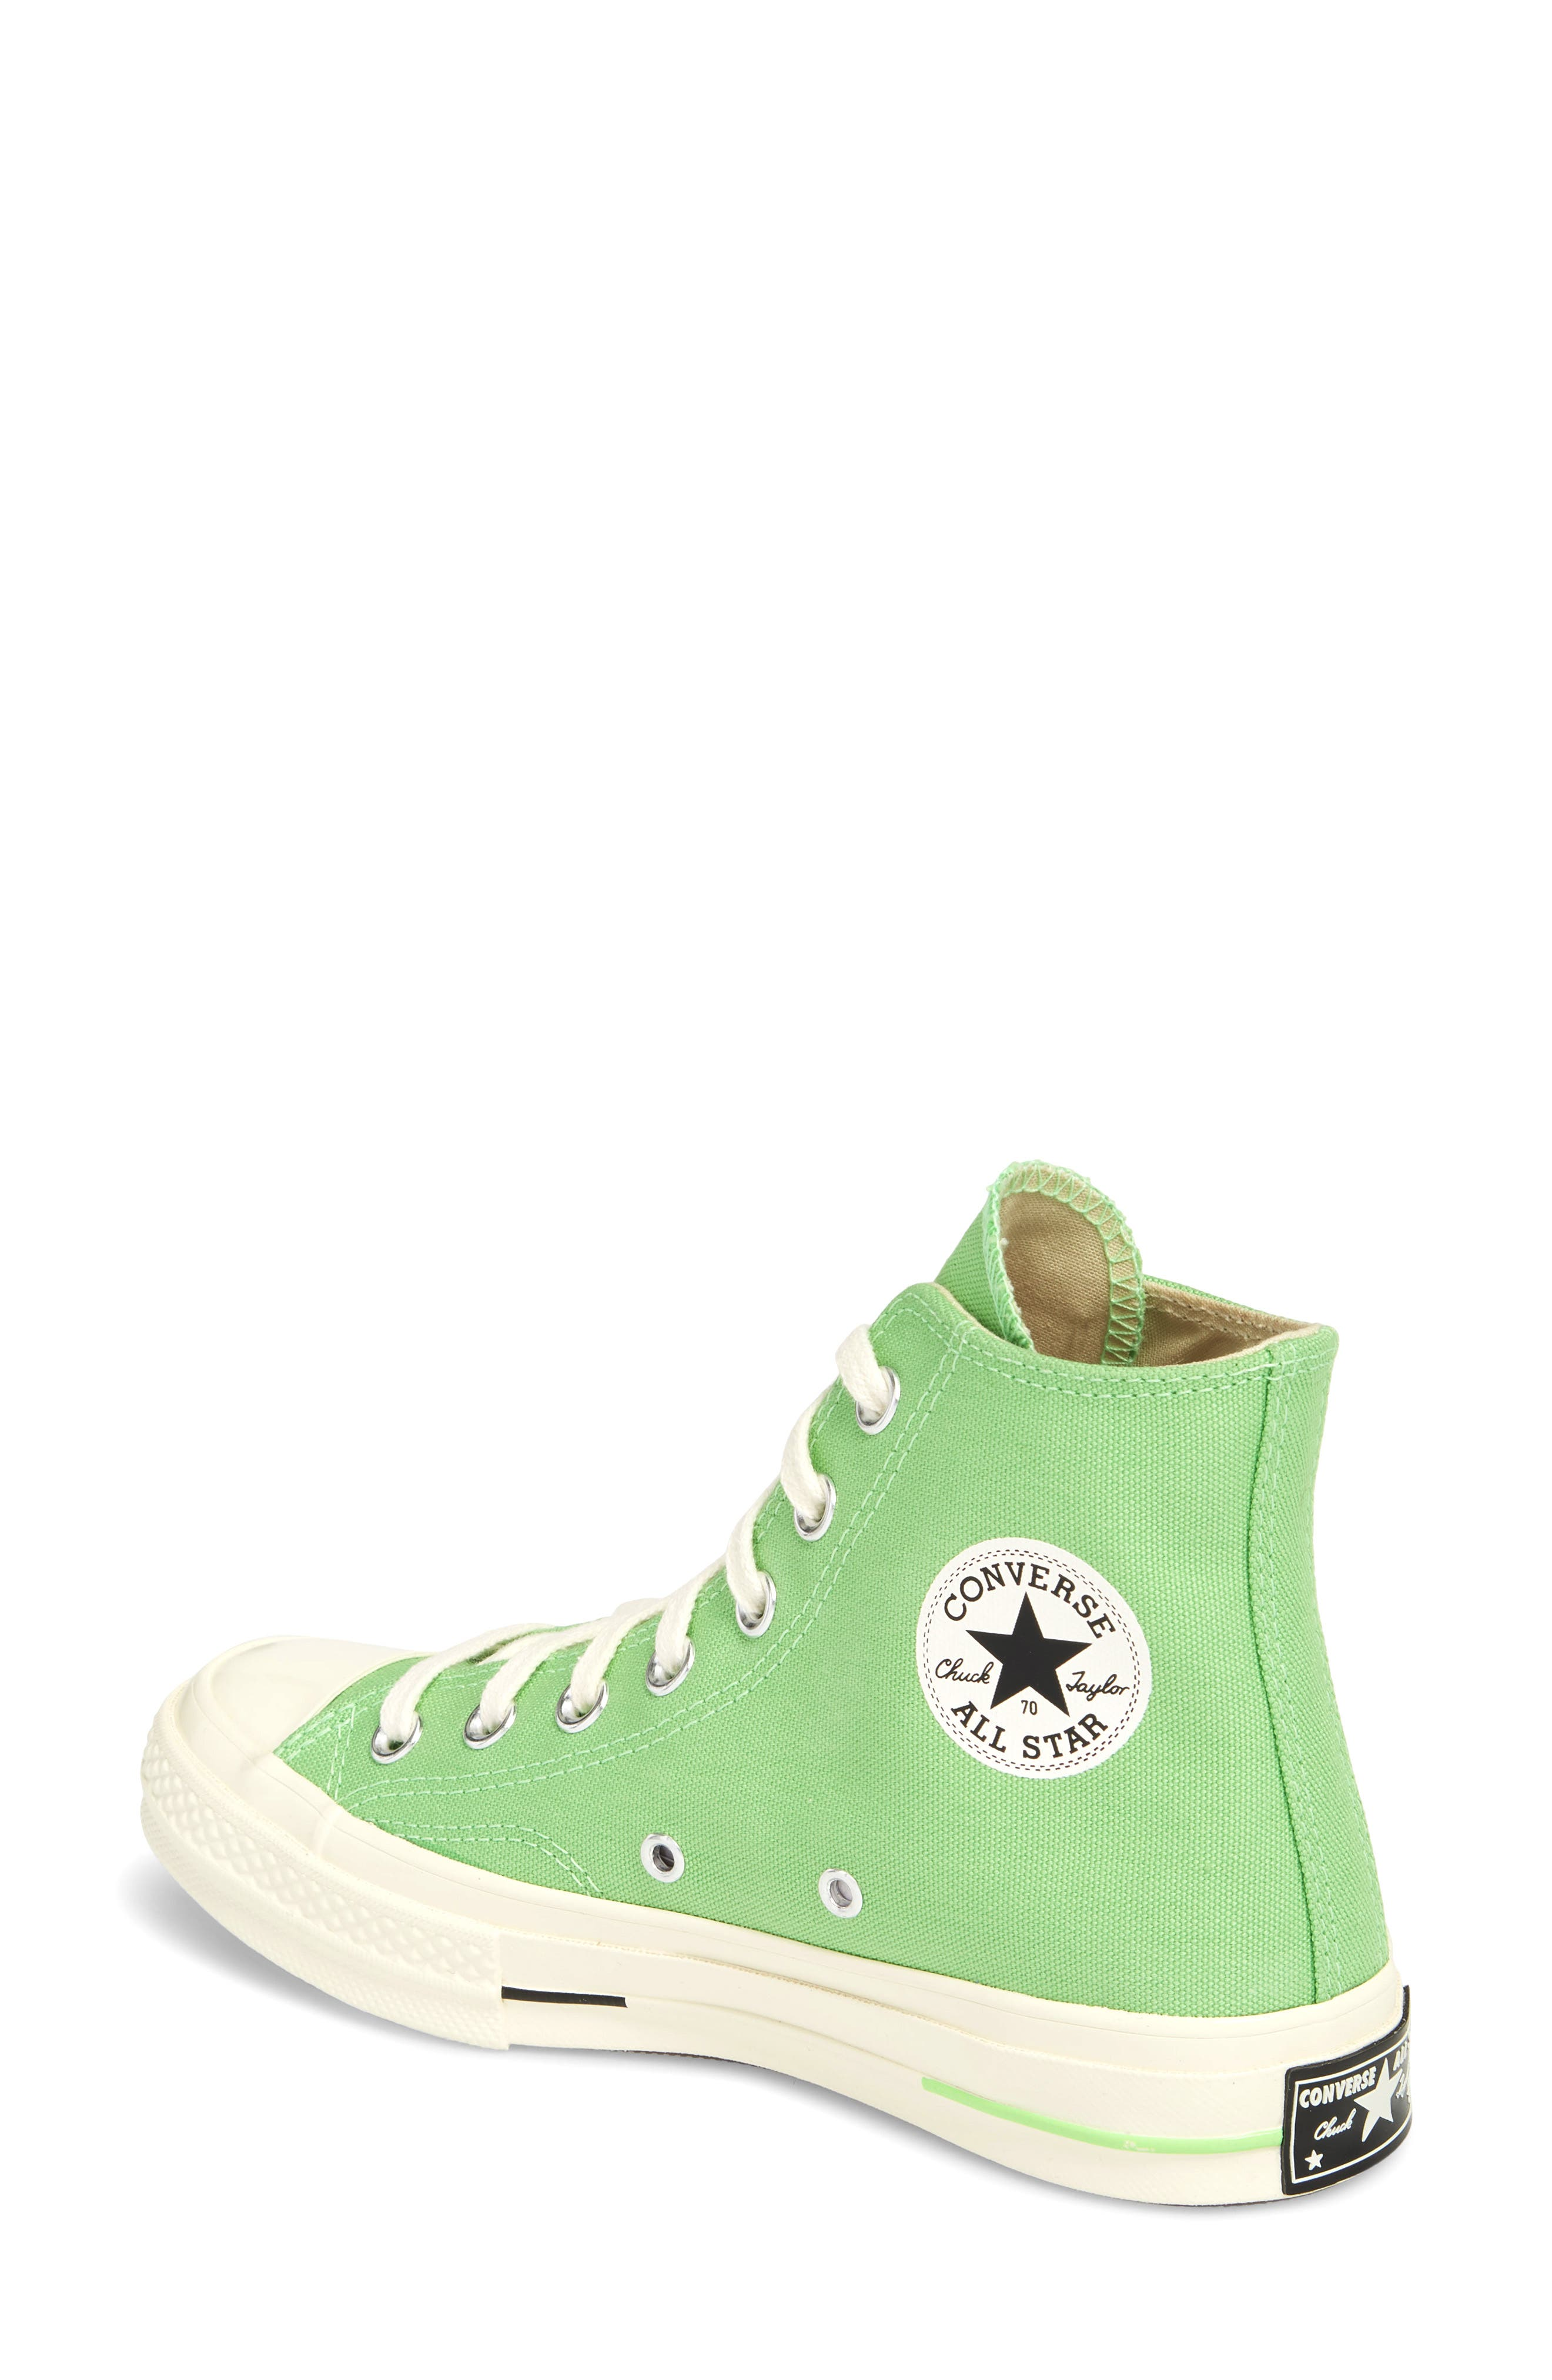 Chuck Taylor<sup>®</sup> All Star<sup>®</sup> 70 Brights High Top Sneaker,                             Alternate thumbnail 2, color,                             336